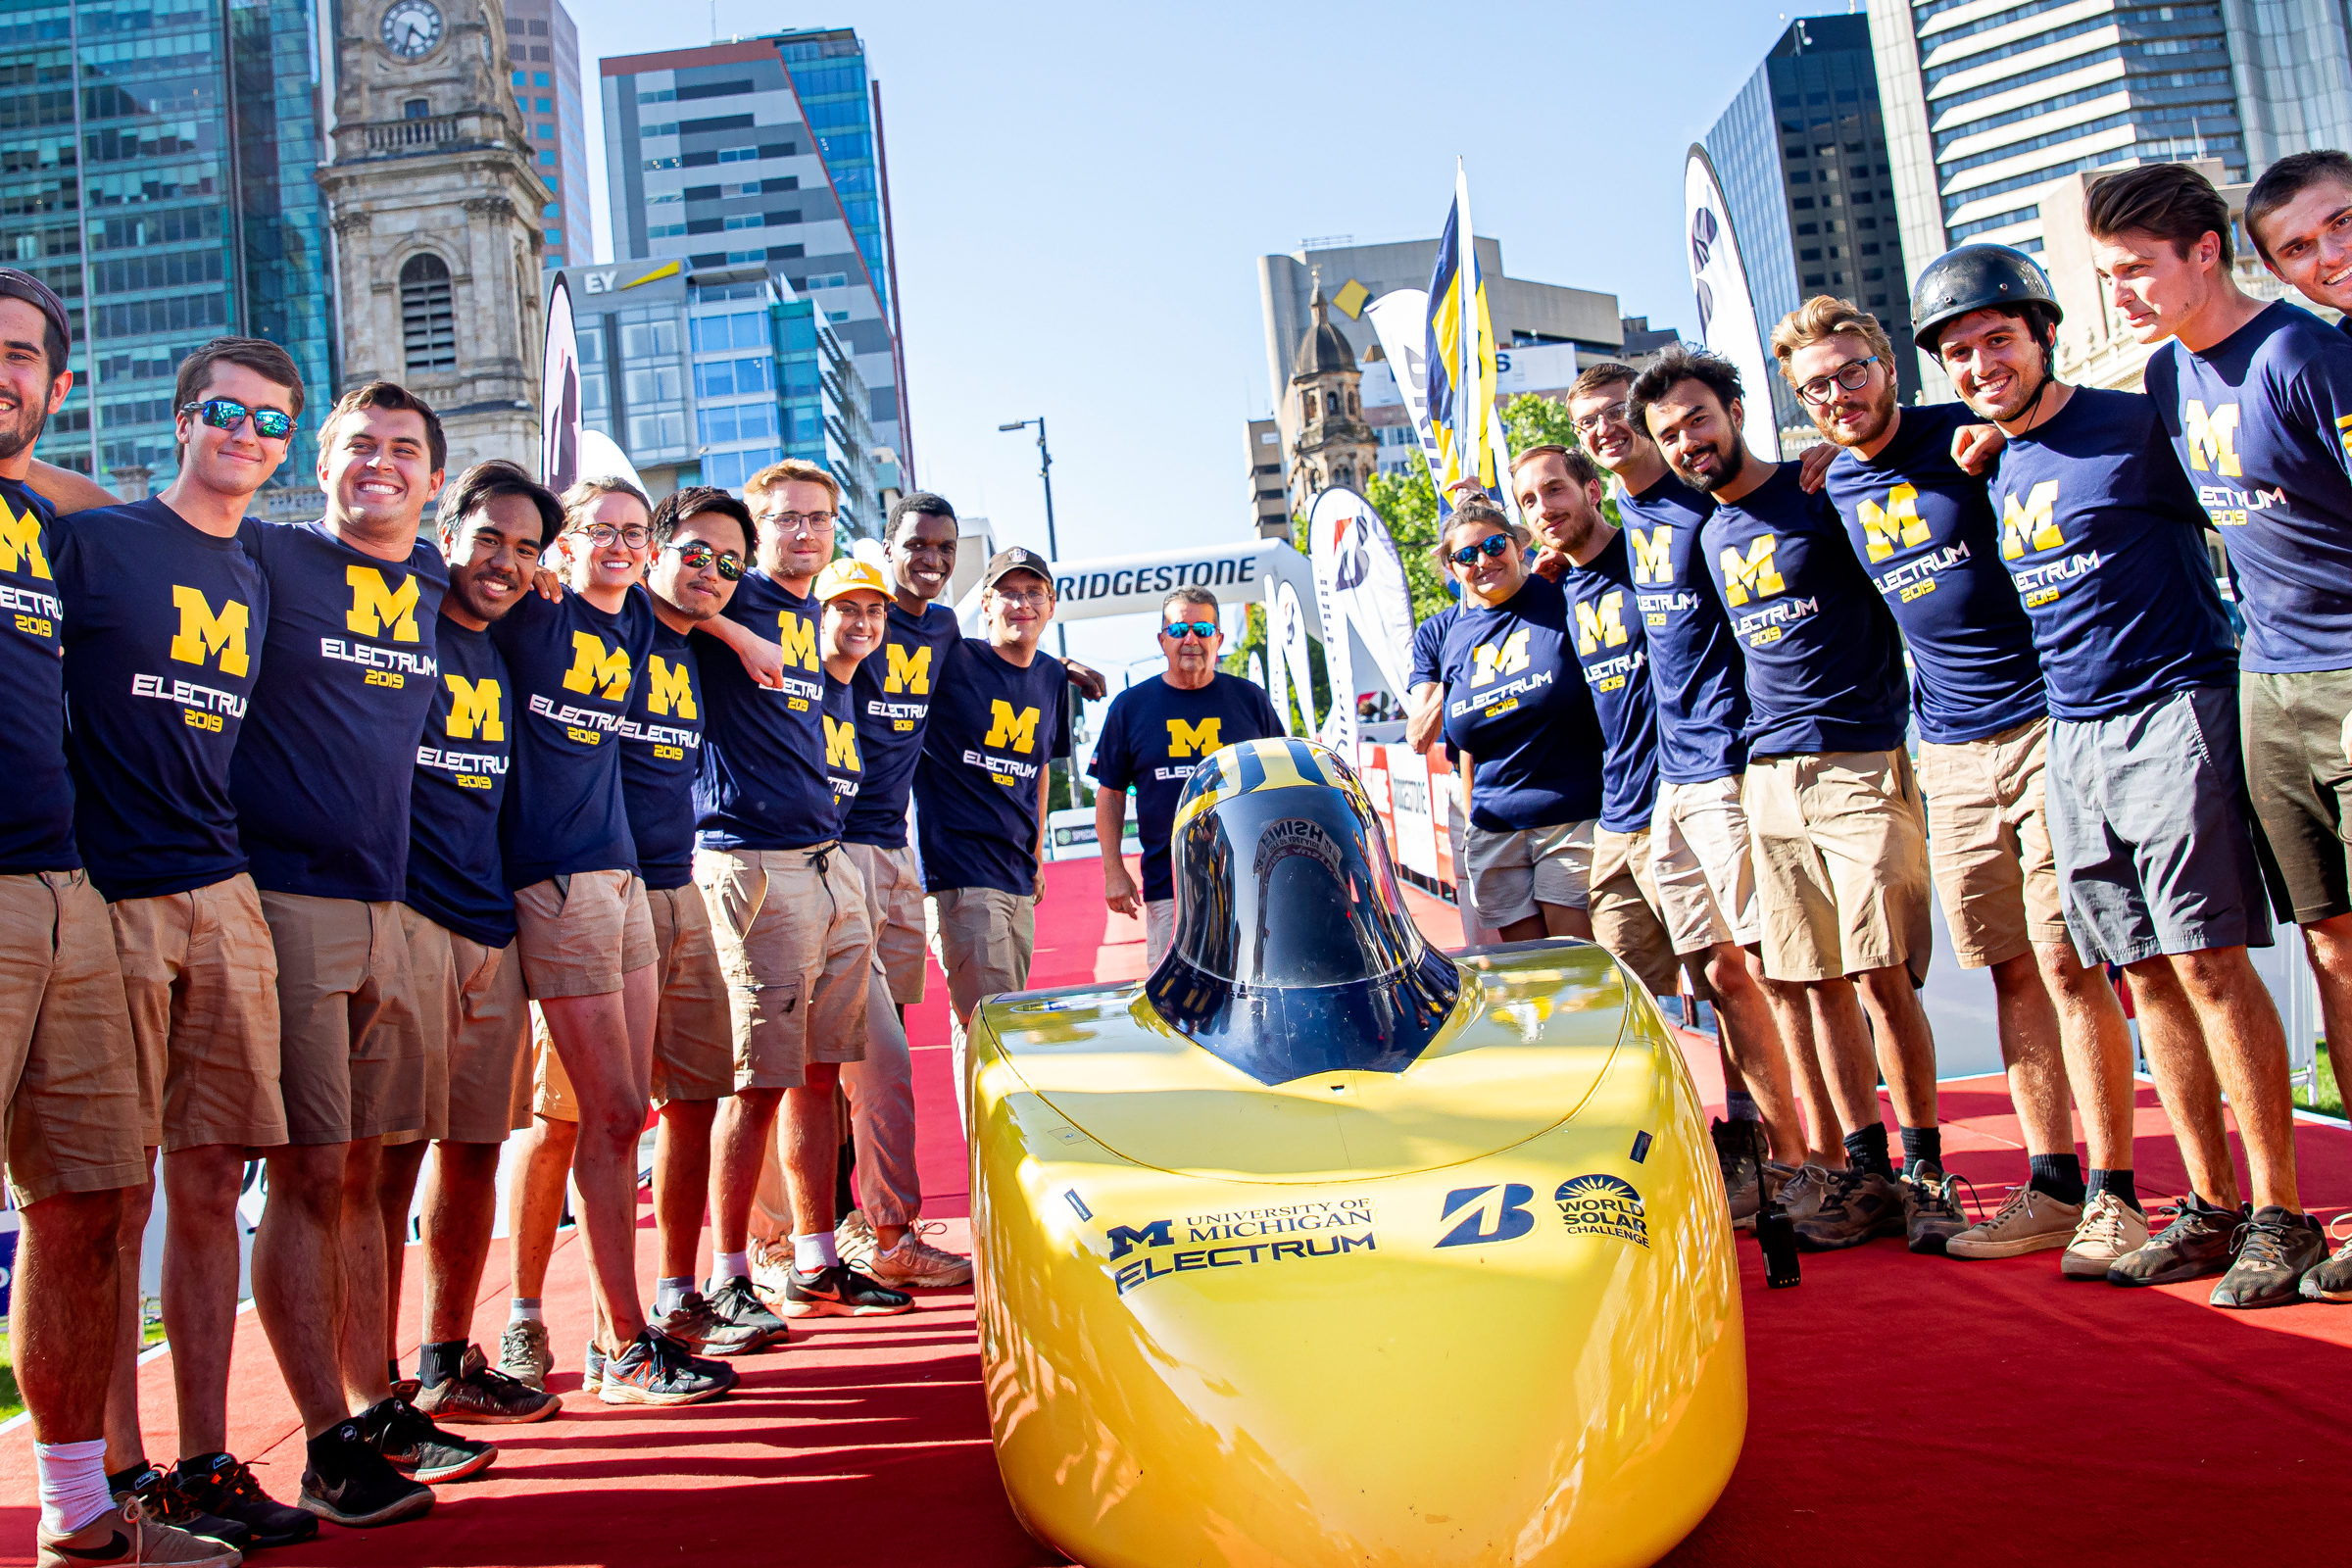 The U-M solar car team finished third in the 2019 Bridgestone World Solar Challenge. Photo: Joseph Xu/Michigan Engineering